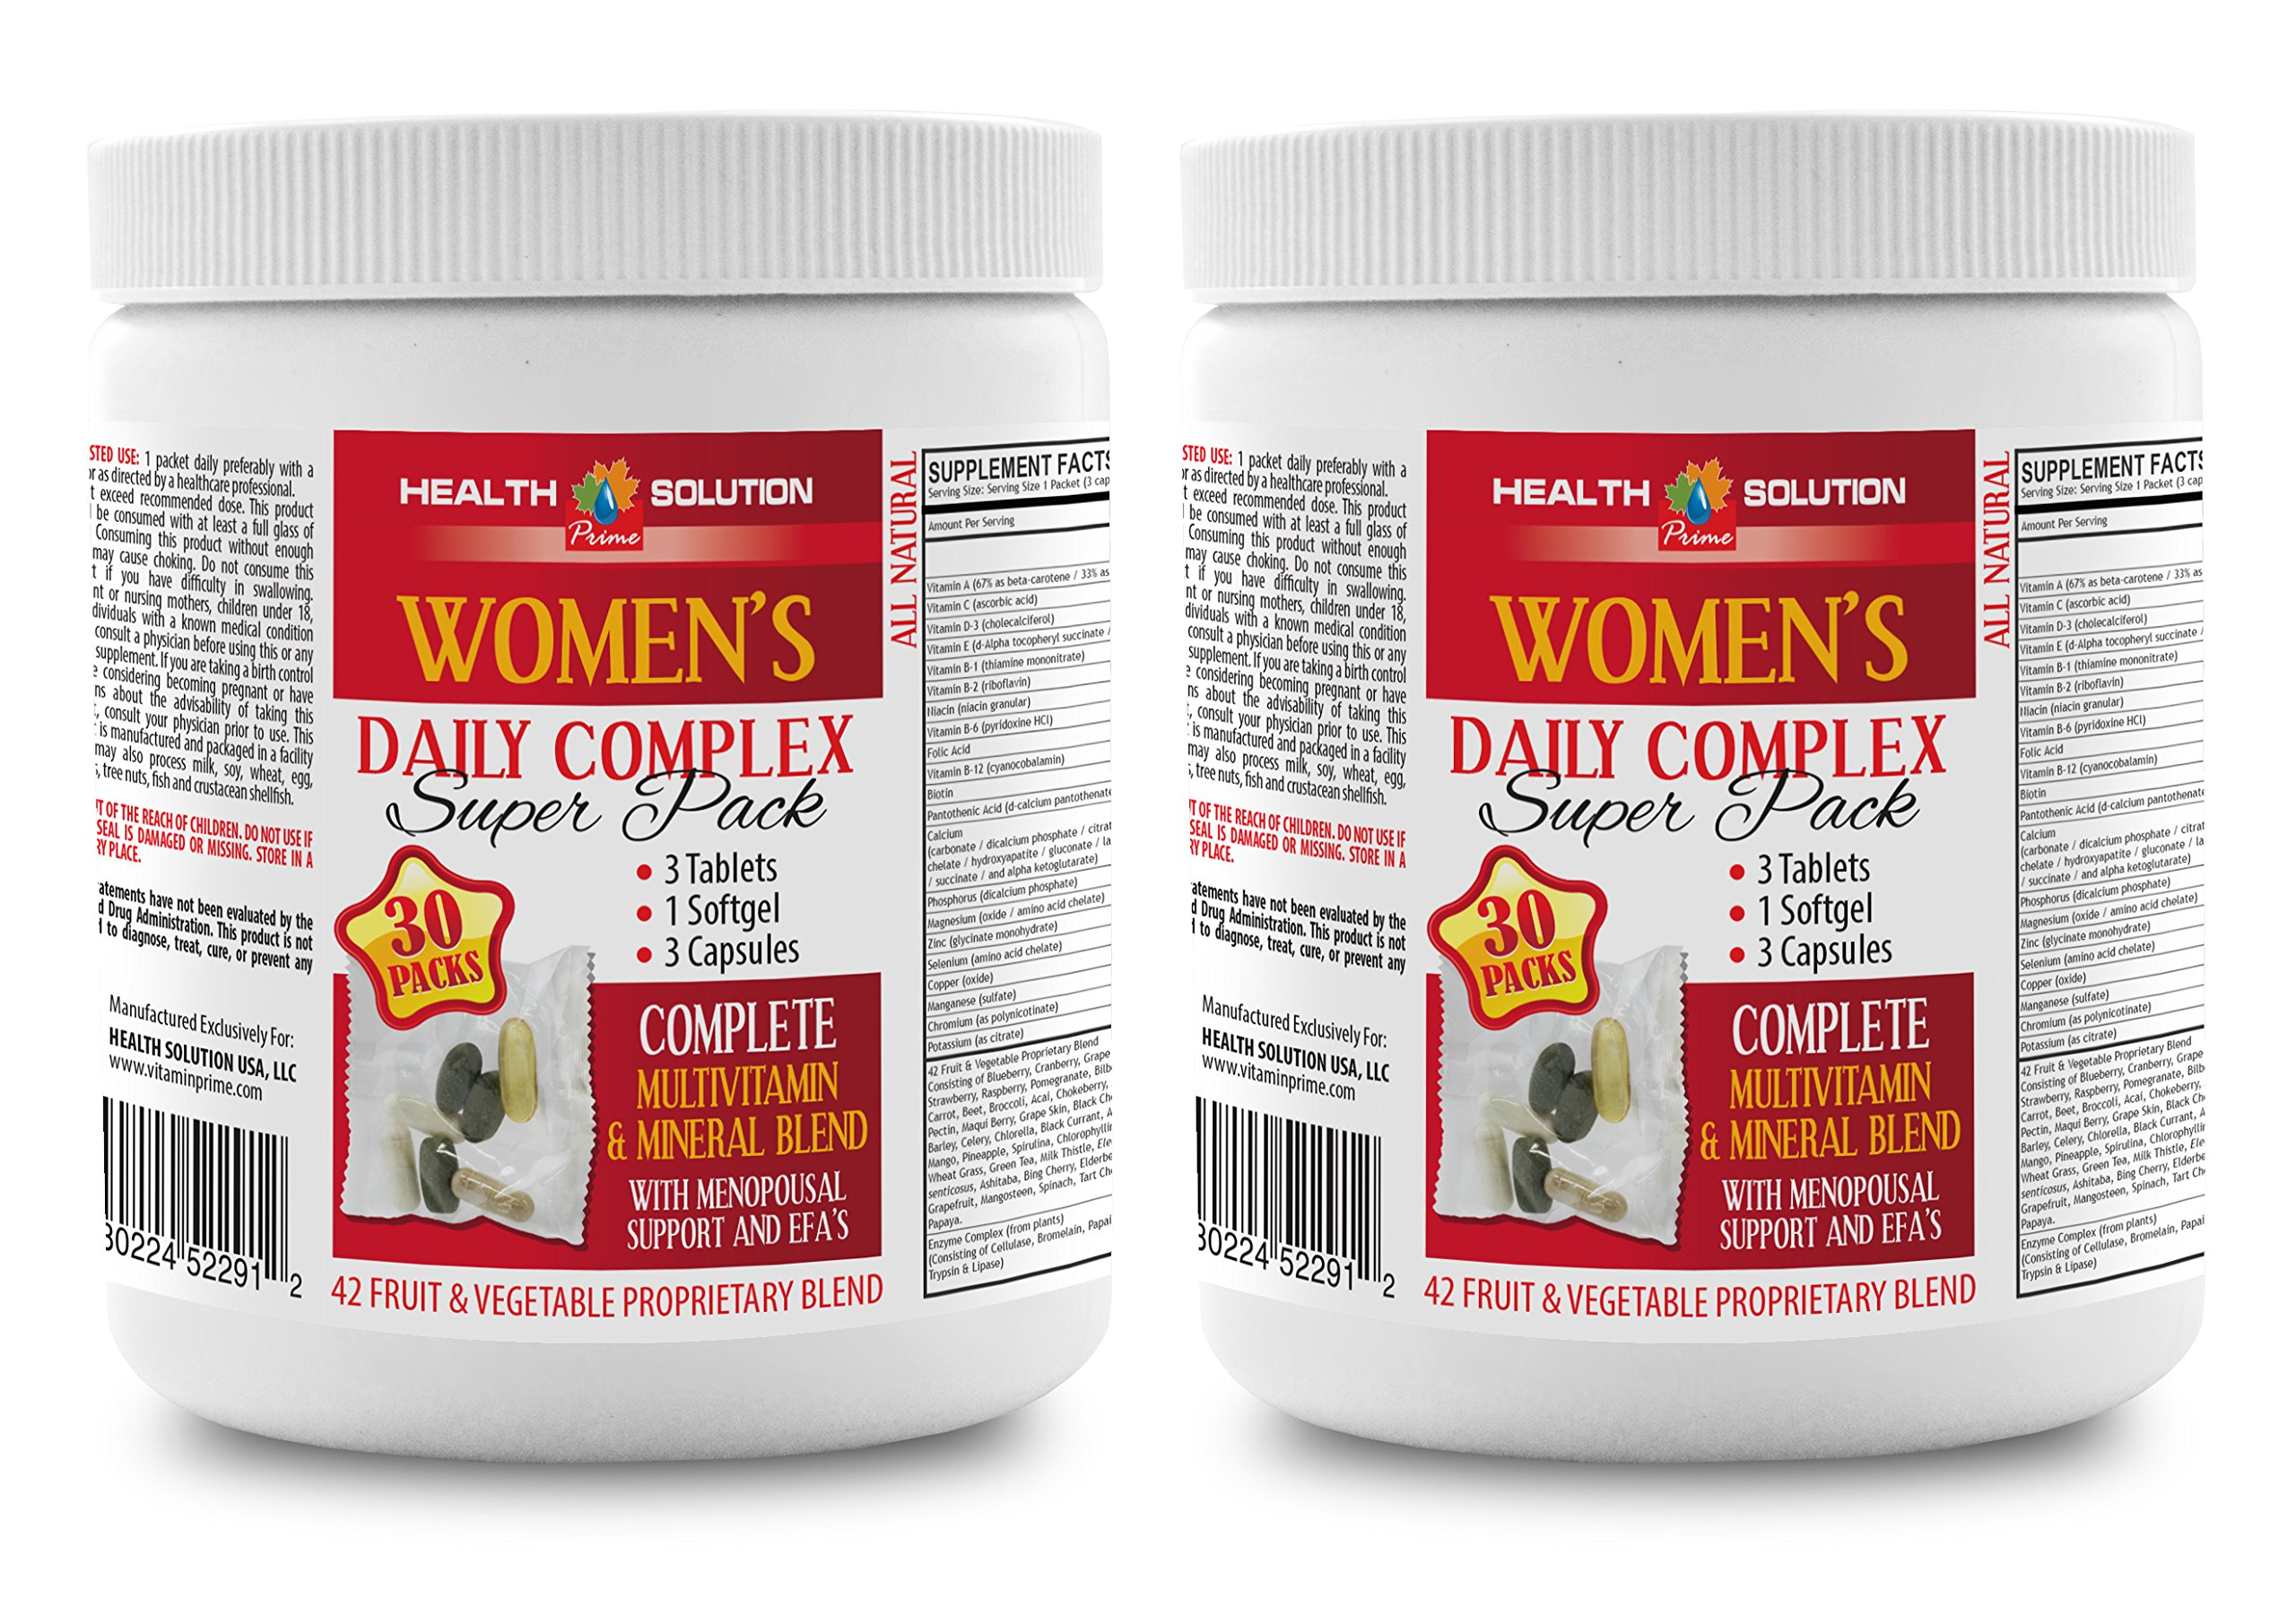 Energy Boosting Vitamins for Women - Women's Daily Complex - Super Pack - Magnesium Supplement for Women - 2 Cans 60 Packs (420 Pills)